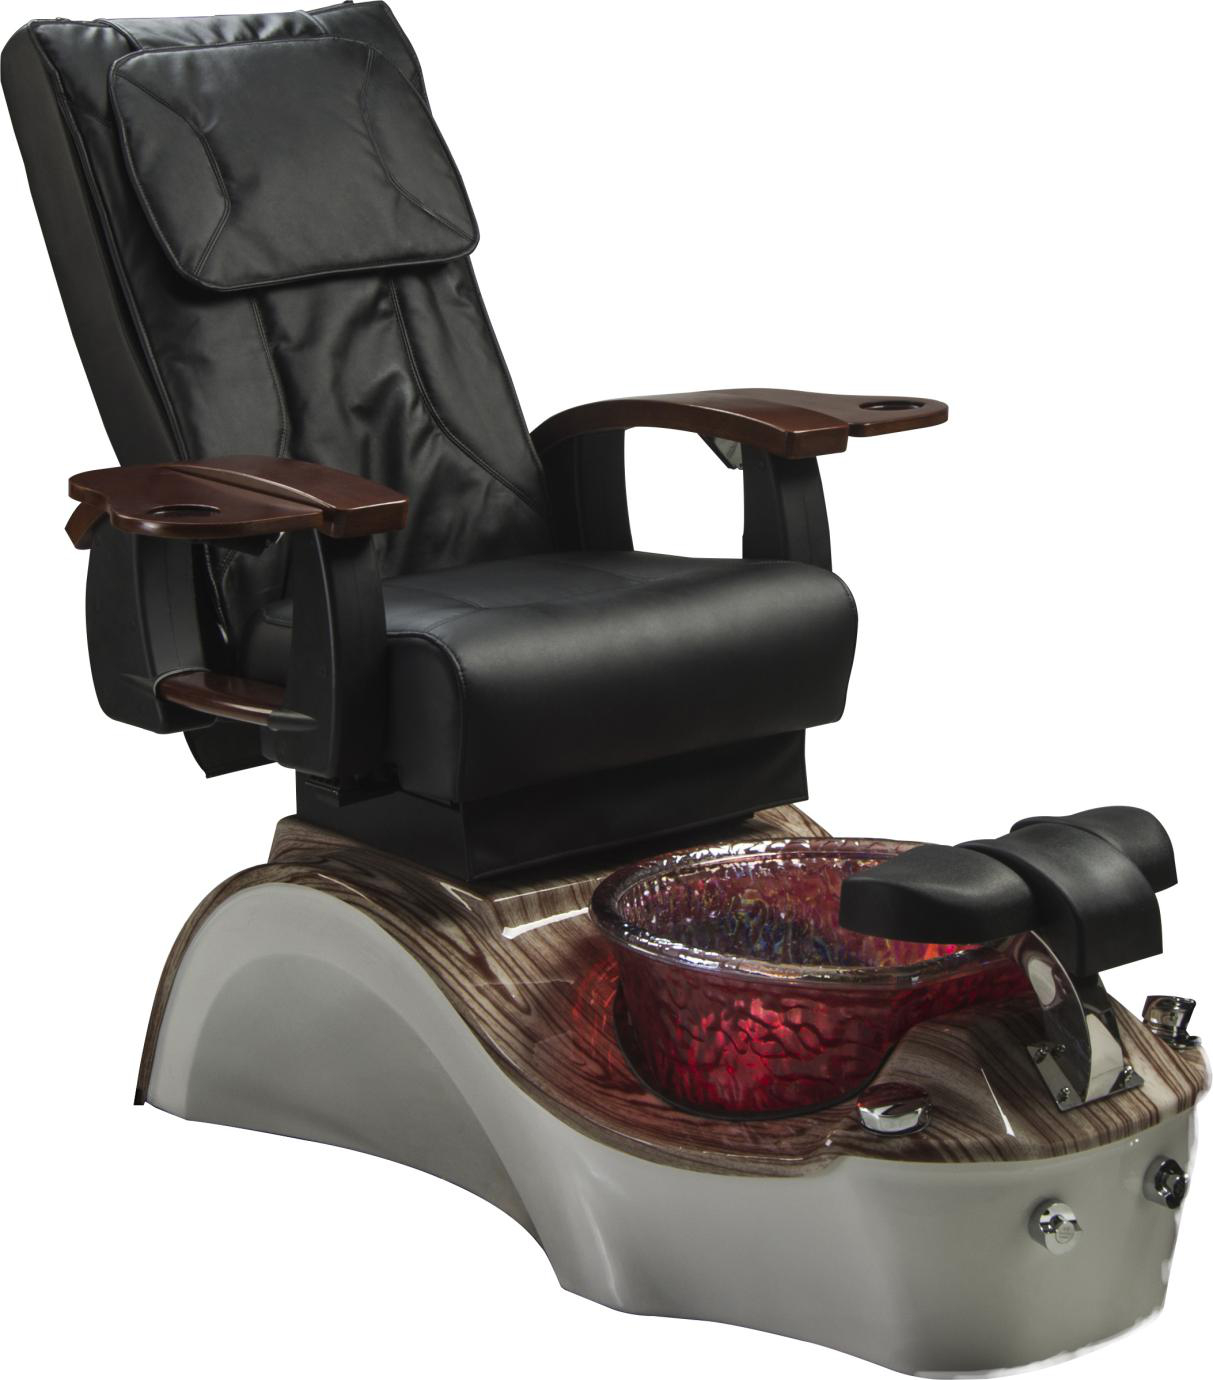 Luxury Manicure Pedicure Chairs Manufacturers Used Spa Throughout Sofa Pedicure Chairs (View 7 of 15)